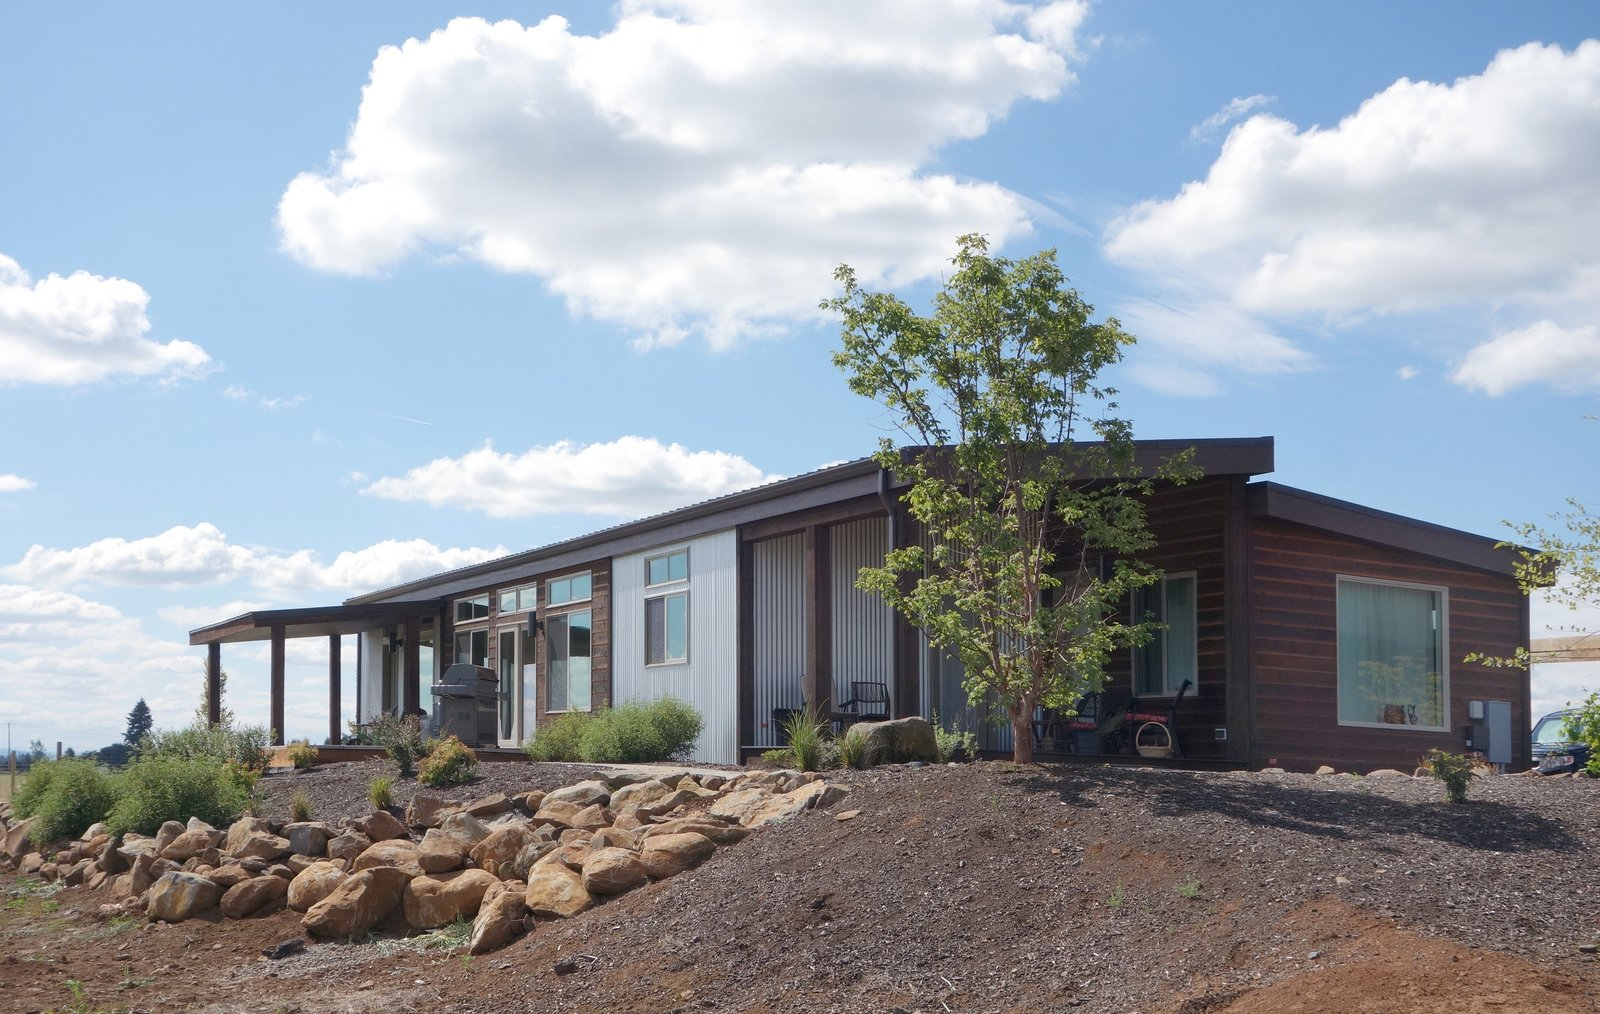 7 Prefab Companies That Oregon Dwellers Should Know - Dwell on mobile homes sale florida, manufactured homes oregon coast, with an ocean view homes on oregon coast, rental homes on oregon coast, land sale oregon coast, mobile home park oregon coast, cheap homes oregon coast, mobile homes for rent, mobile homes with fences, mobile home rentals oregon coast, mobile home in oregon city,